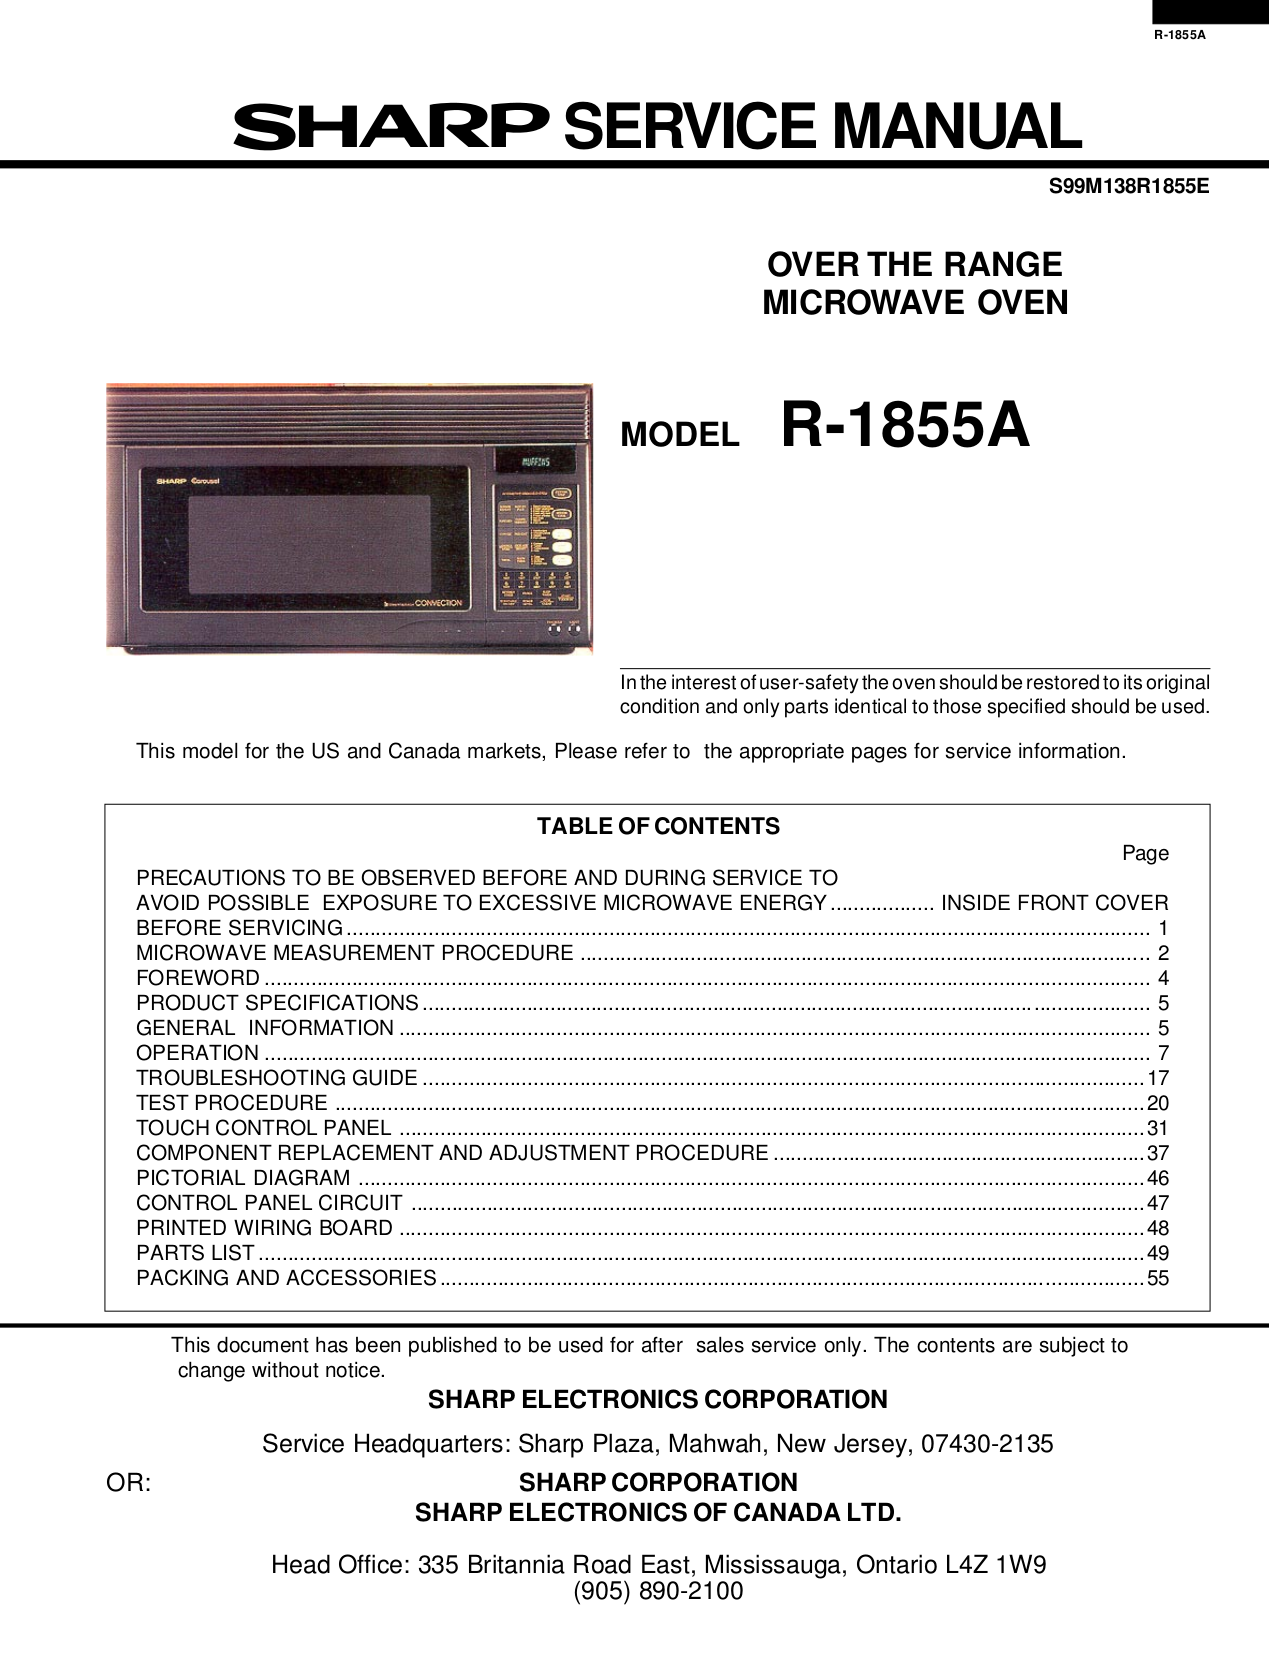 Pdf Manual For Sharp Microwave R 1505 Control Panel Circuit Diagram And Parts List Microwaveparts Page Preview